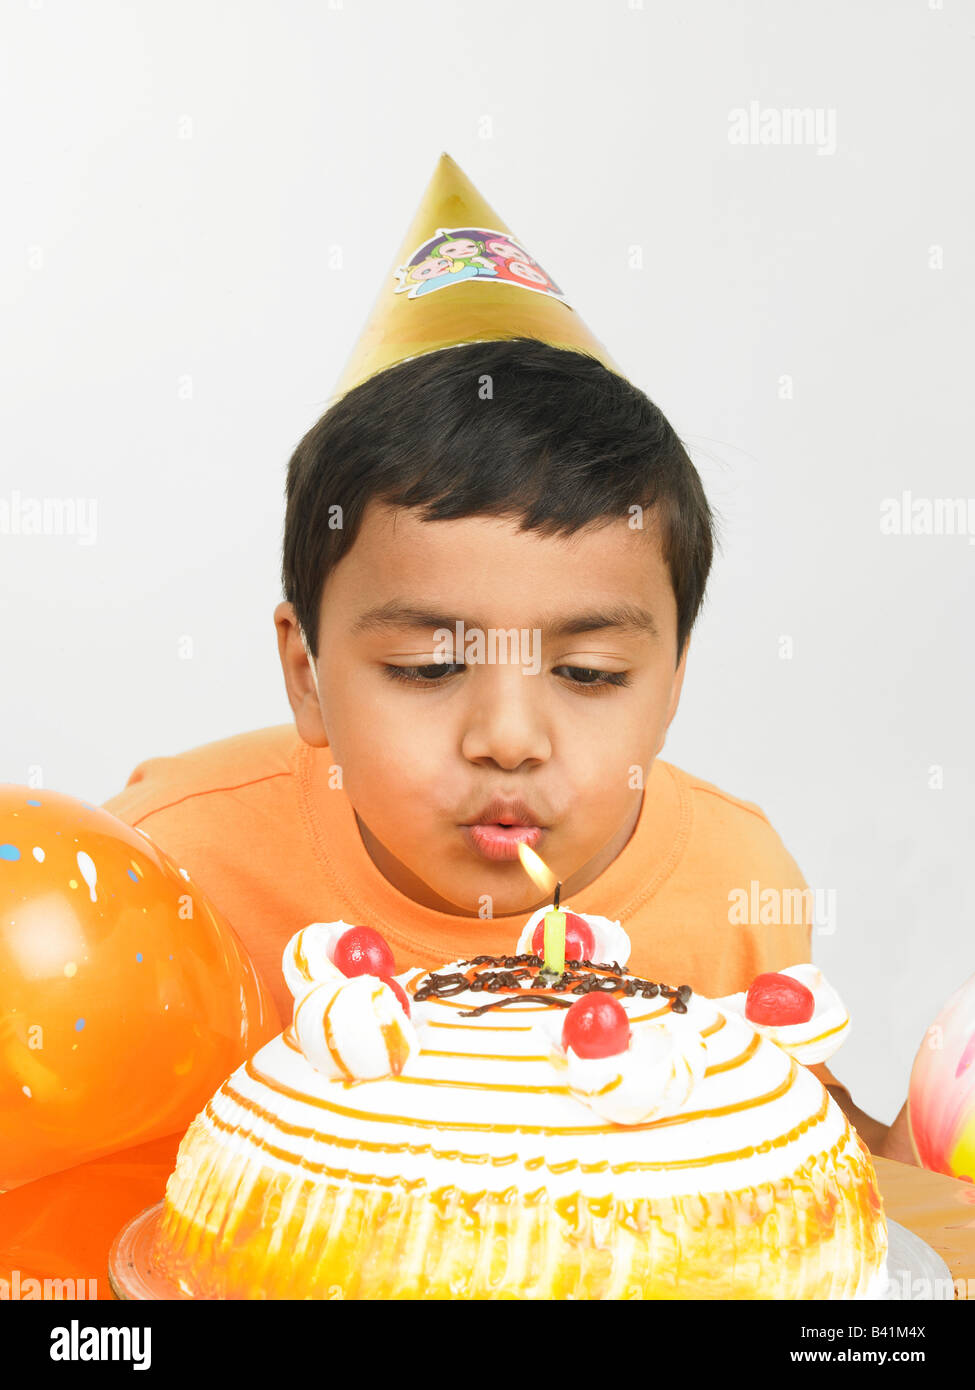 Wondrous Asian Kid Of Indian Origin Blowing The Candle Of His Birthday Cake Funny Birthday Cards Online Chimdamsfinfo